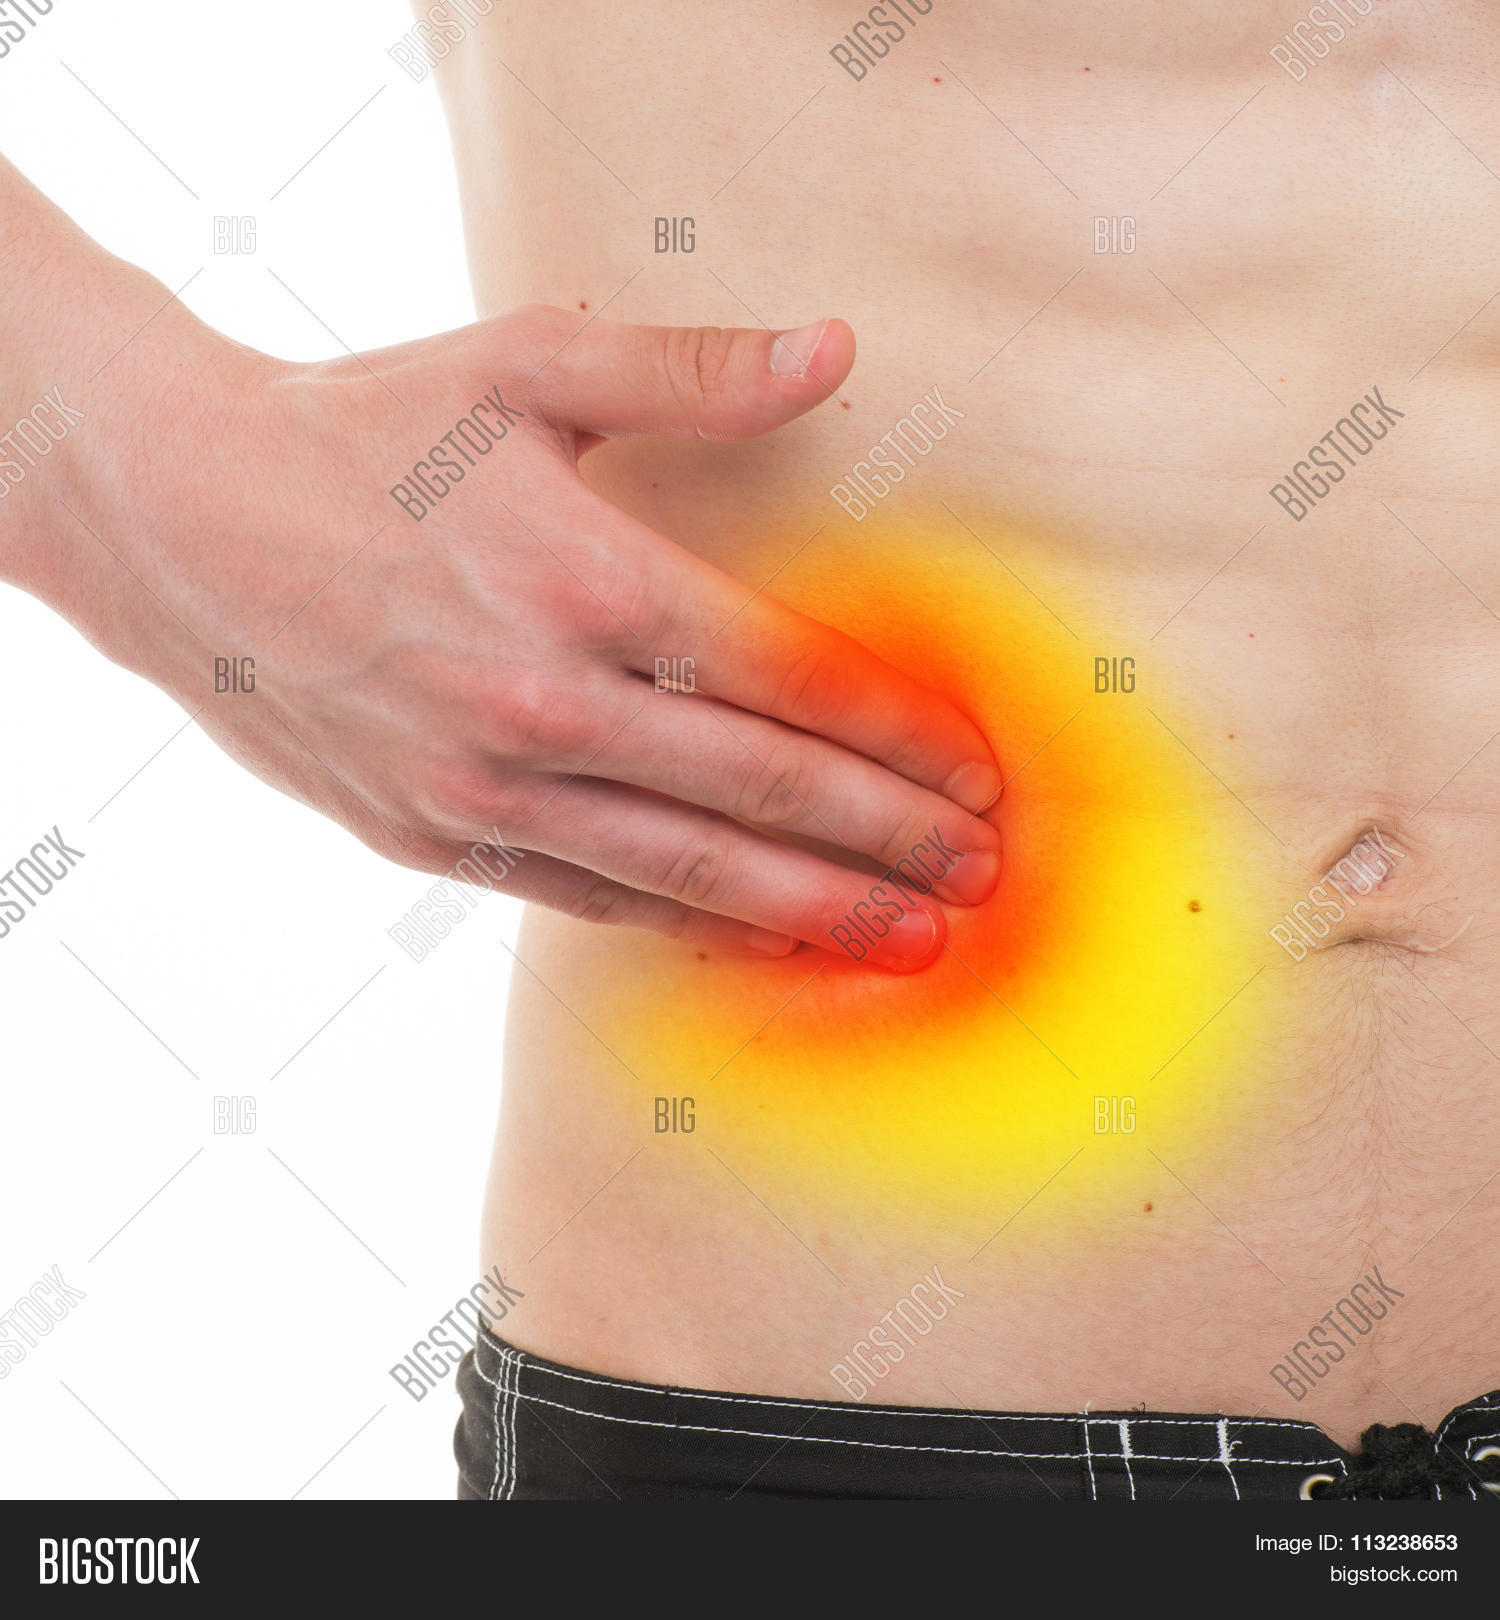 Abdominal pain male anatomy right image photo bigstock abdominal pain male anatomy right side pain isolated on white real anatomy ccuart Gallery